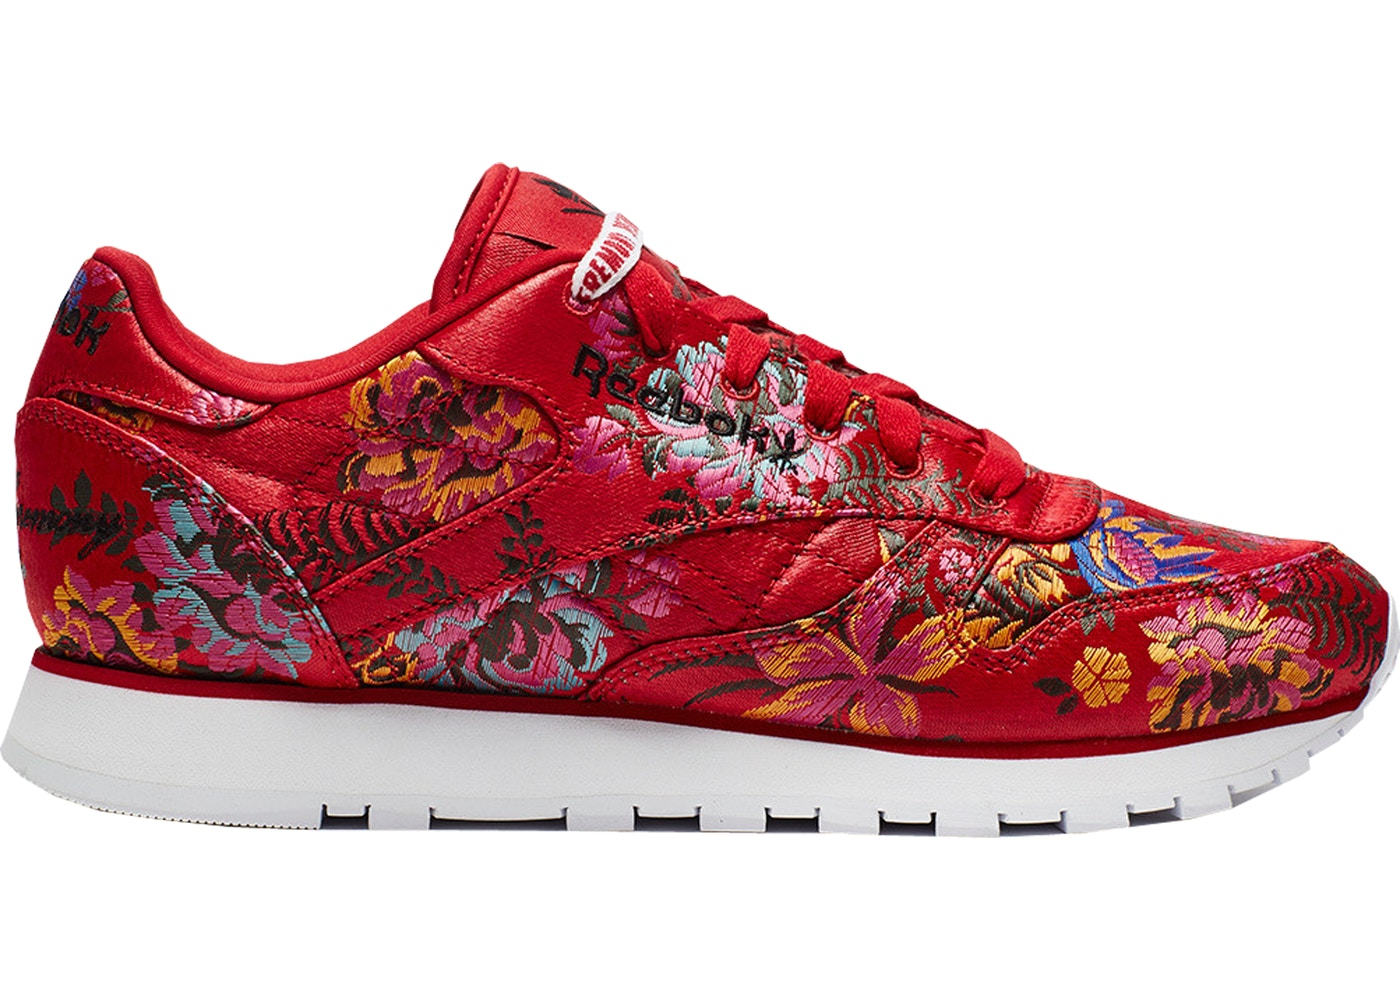 comportarse chorro Sentido táctil  Reebok Classic Leather Opening Ceremony Floral Satin Red - Sneakers